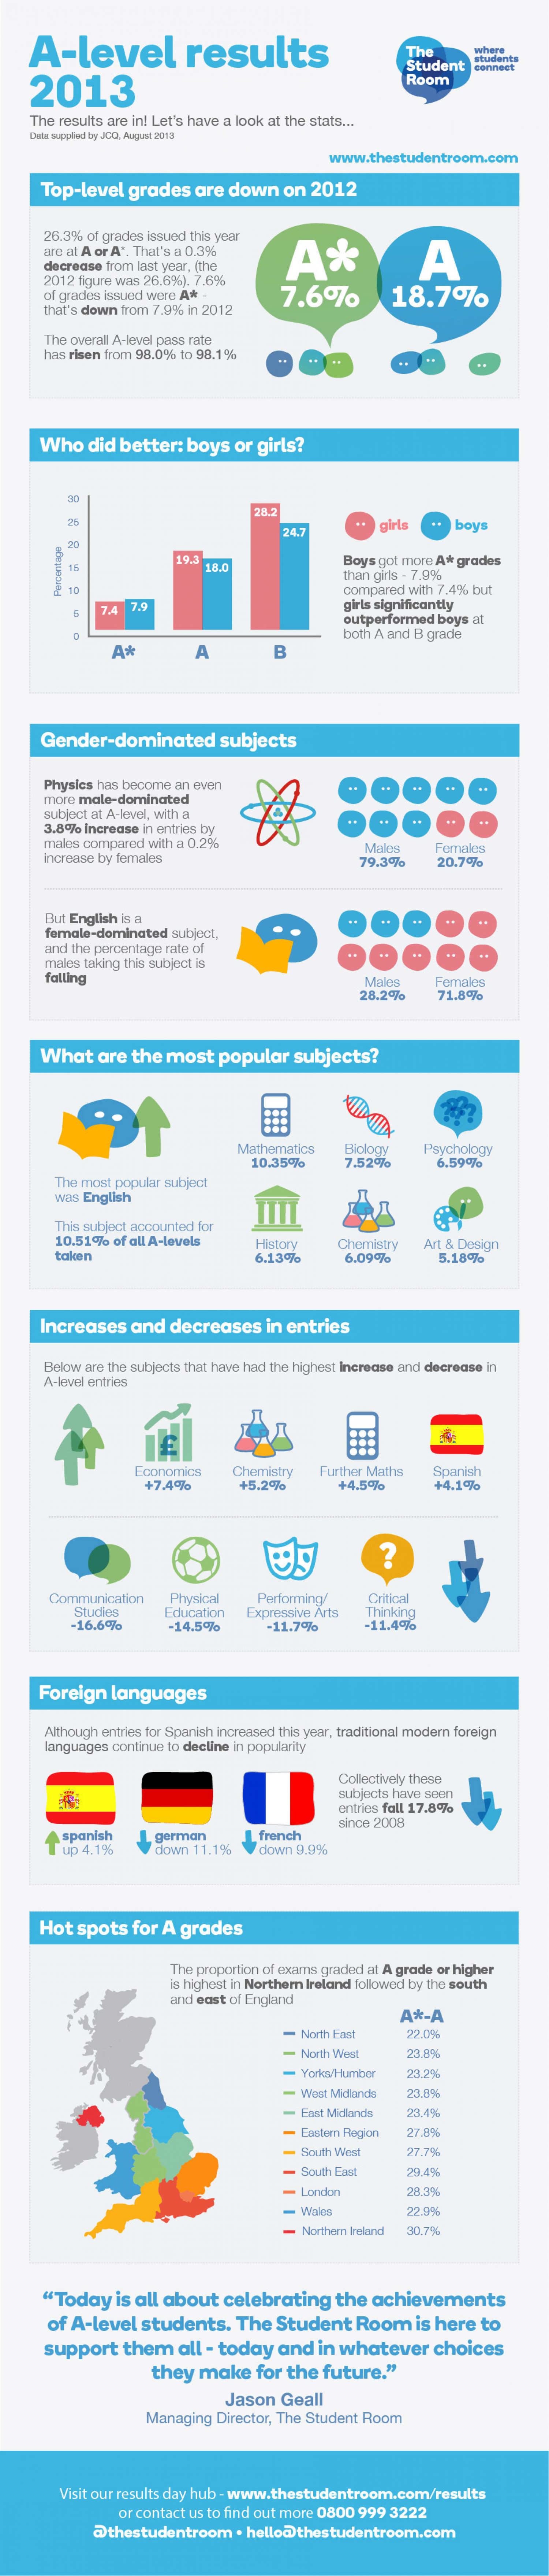 A-level results 2013 data - from The Student Room Infographic